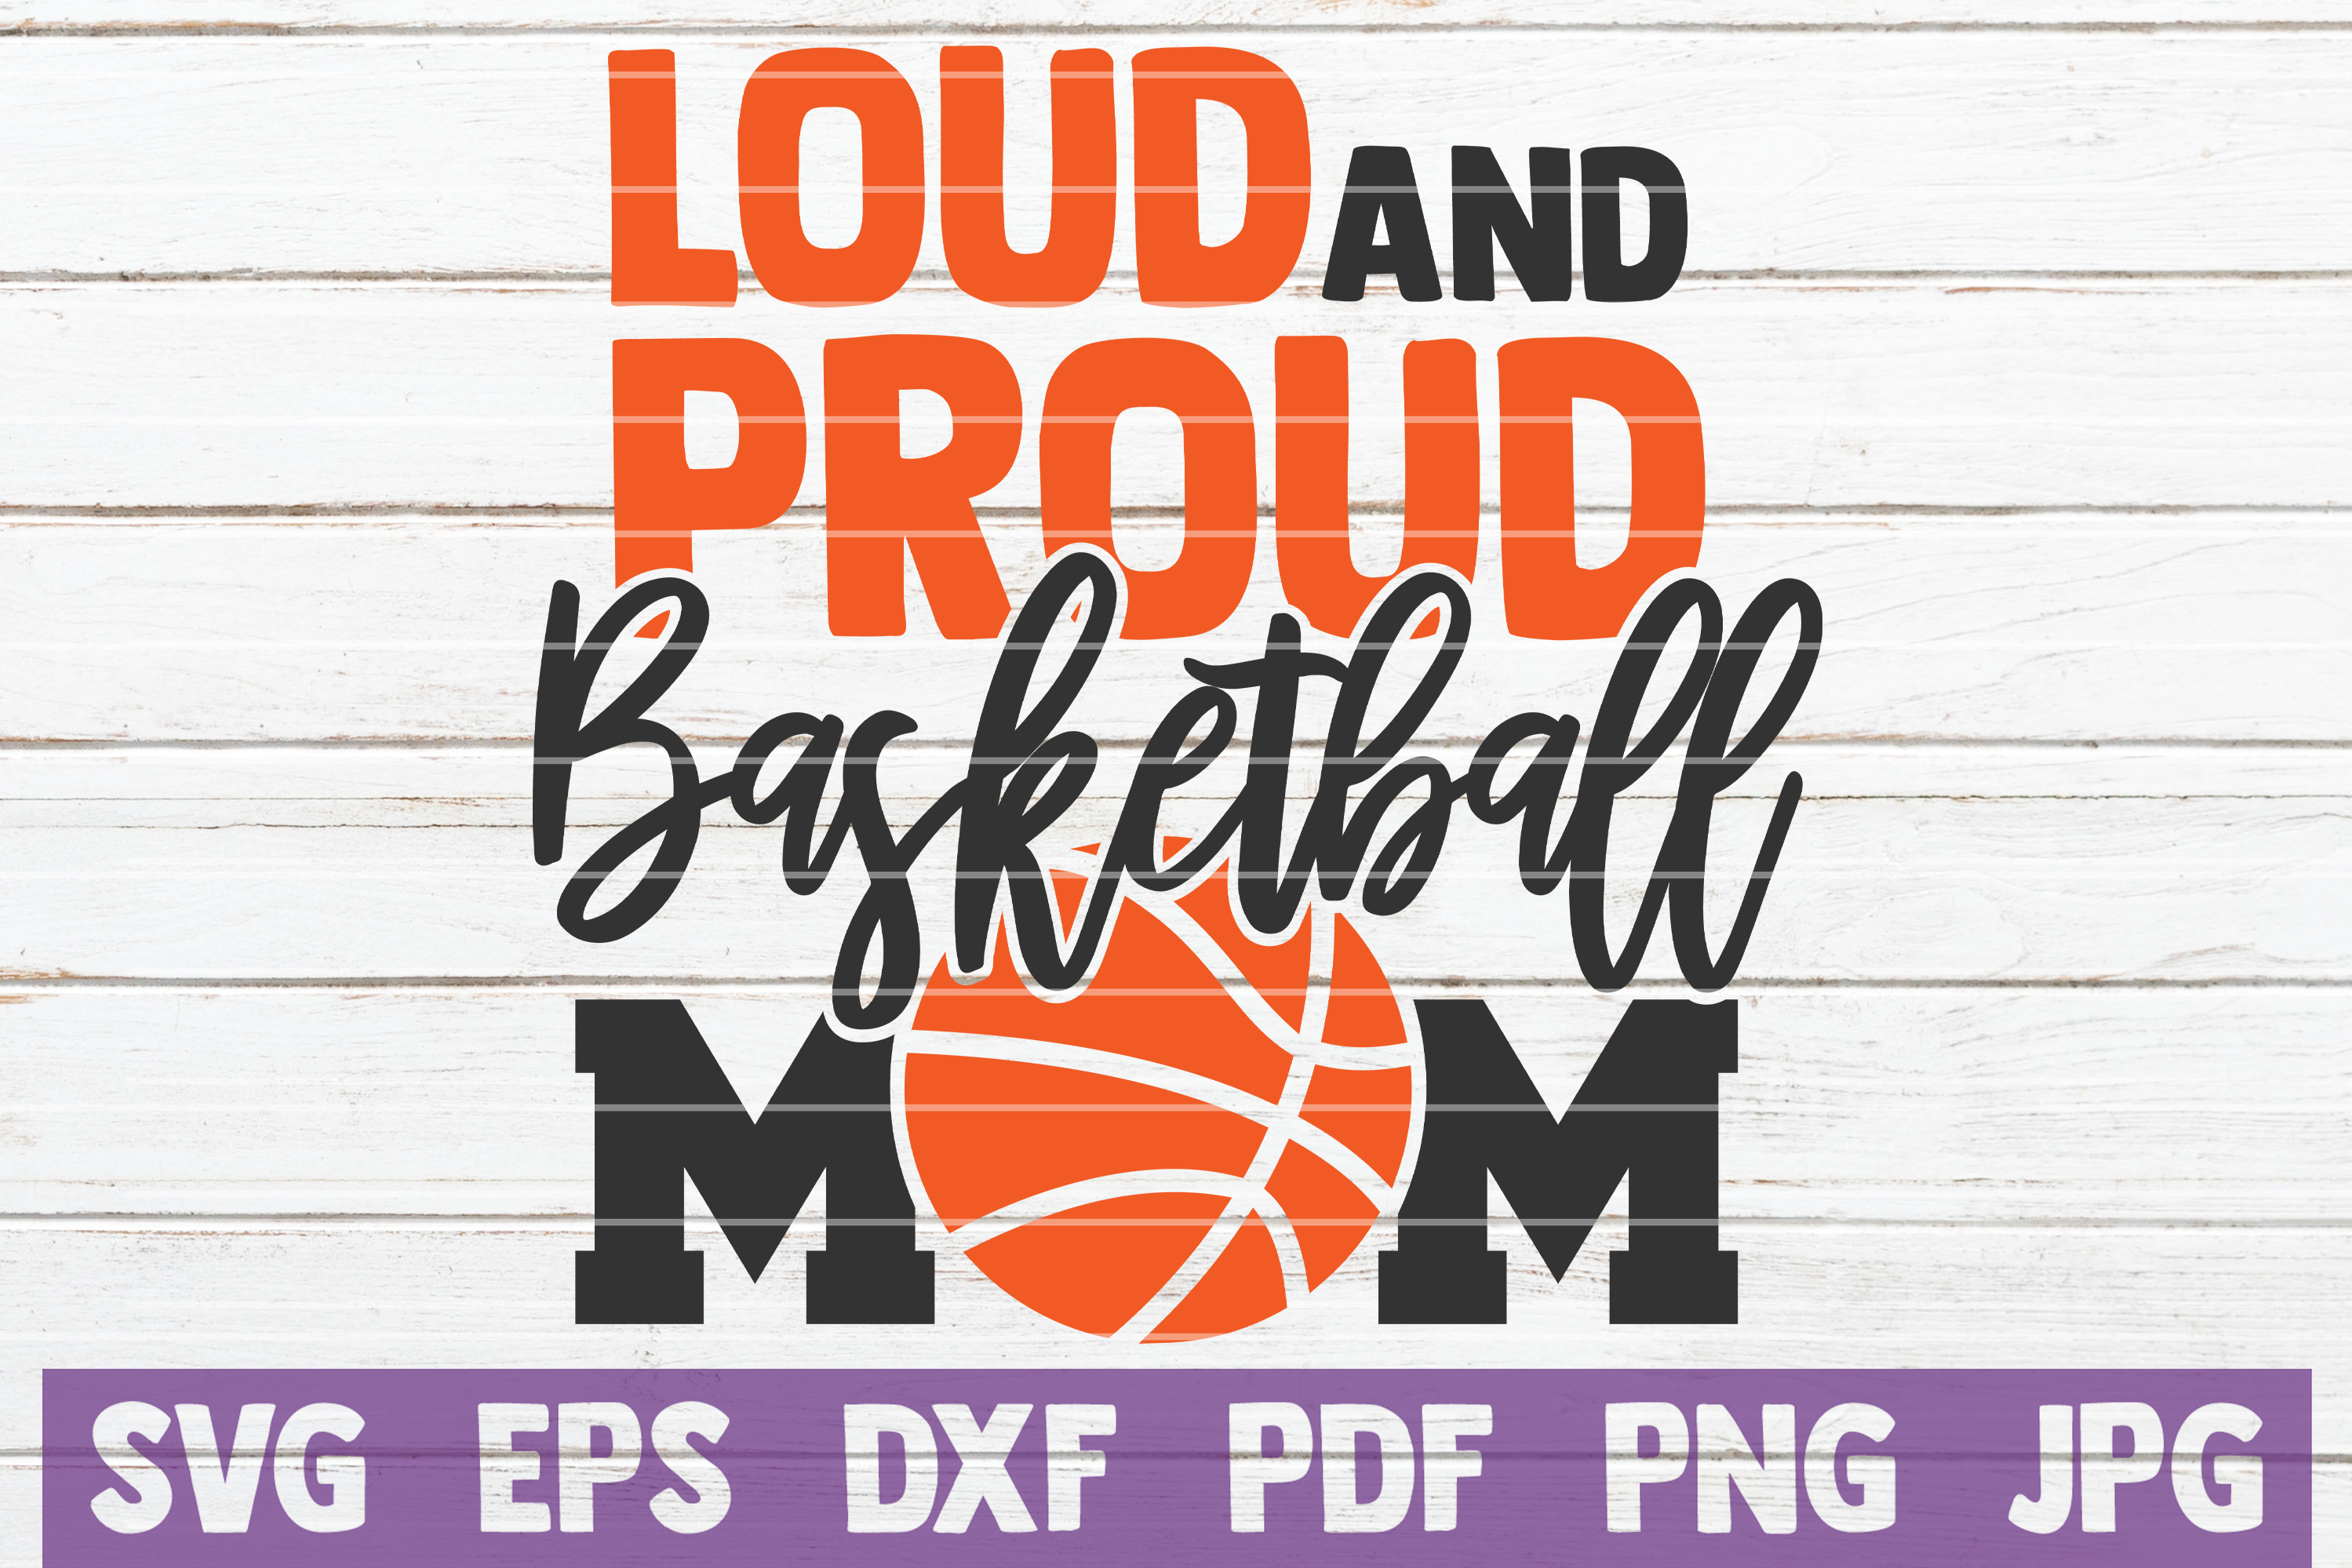 Download Free Loud And Proud Basketball Mom Svg Graphic By Mintymarshmallows for Cricut Explore, Silhouette and other cutting machines.